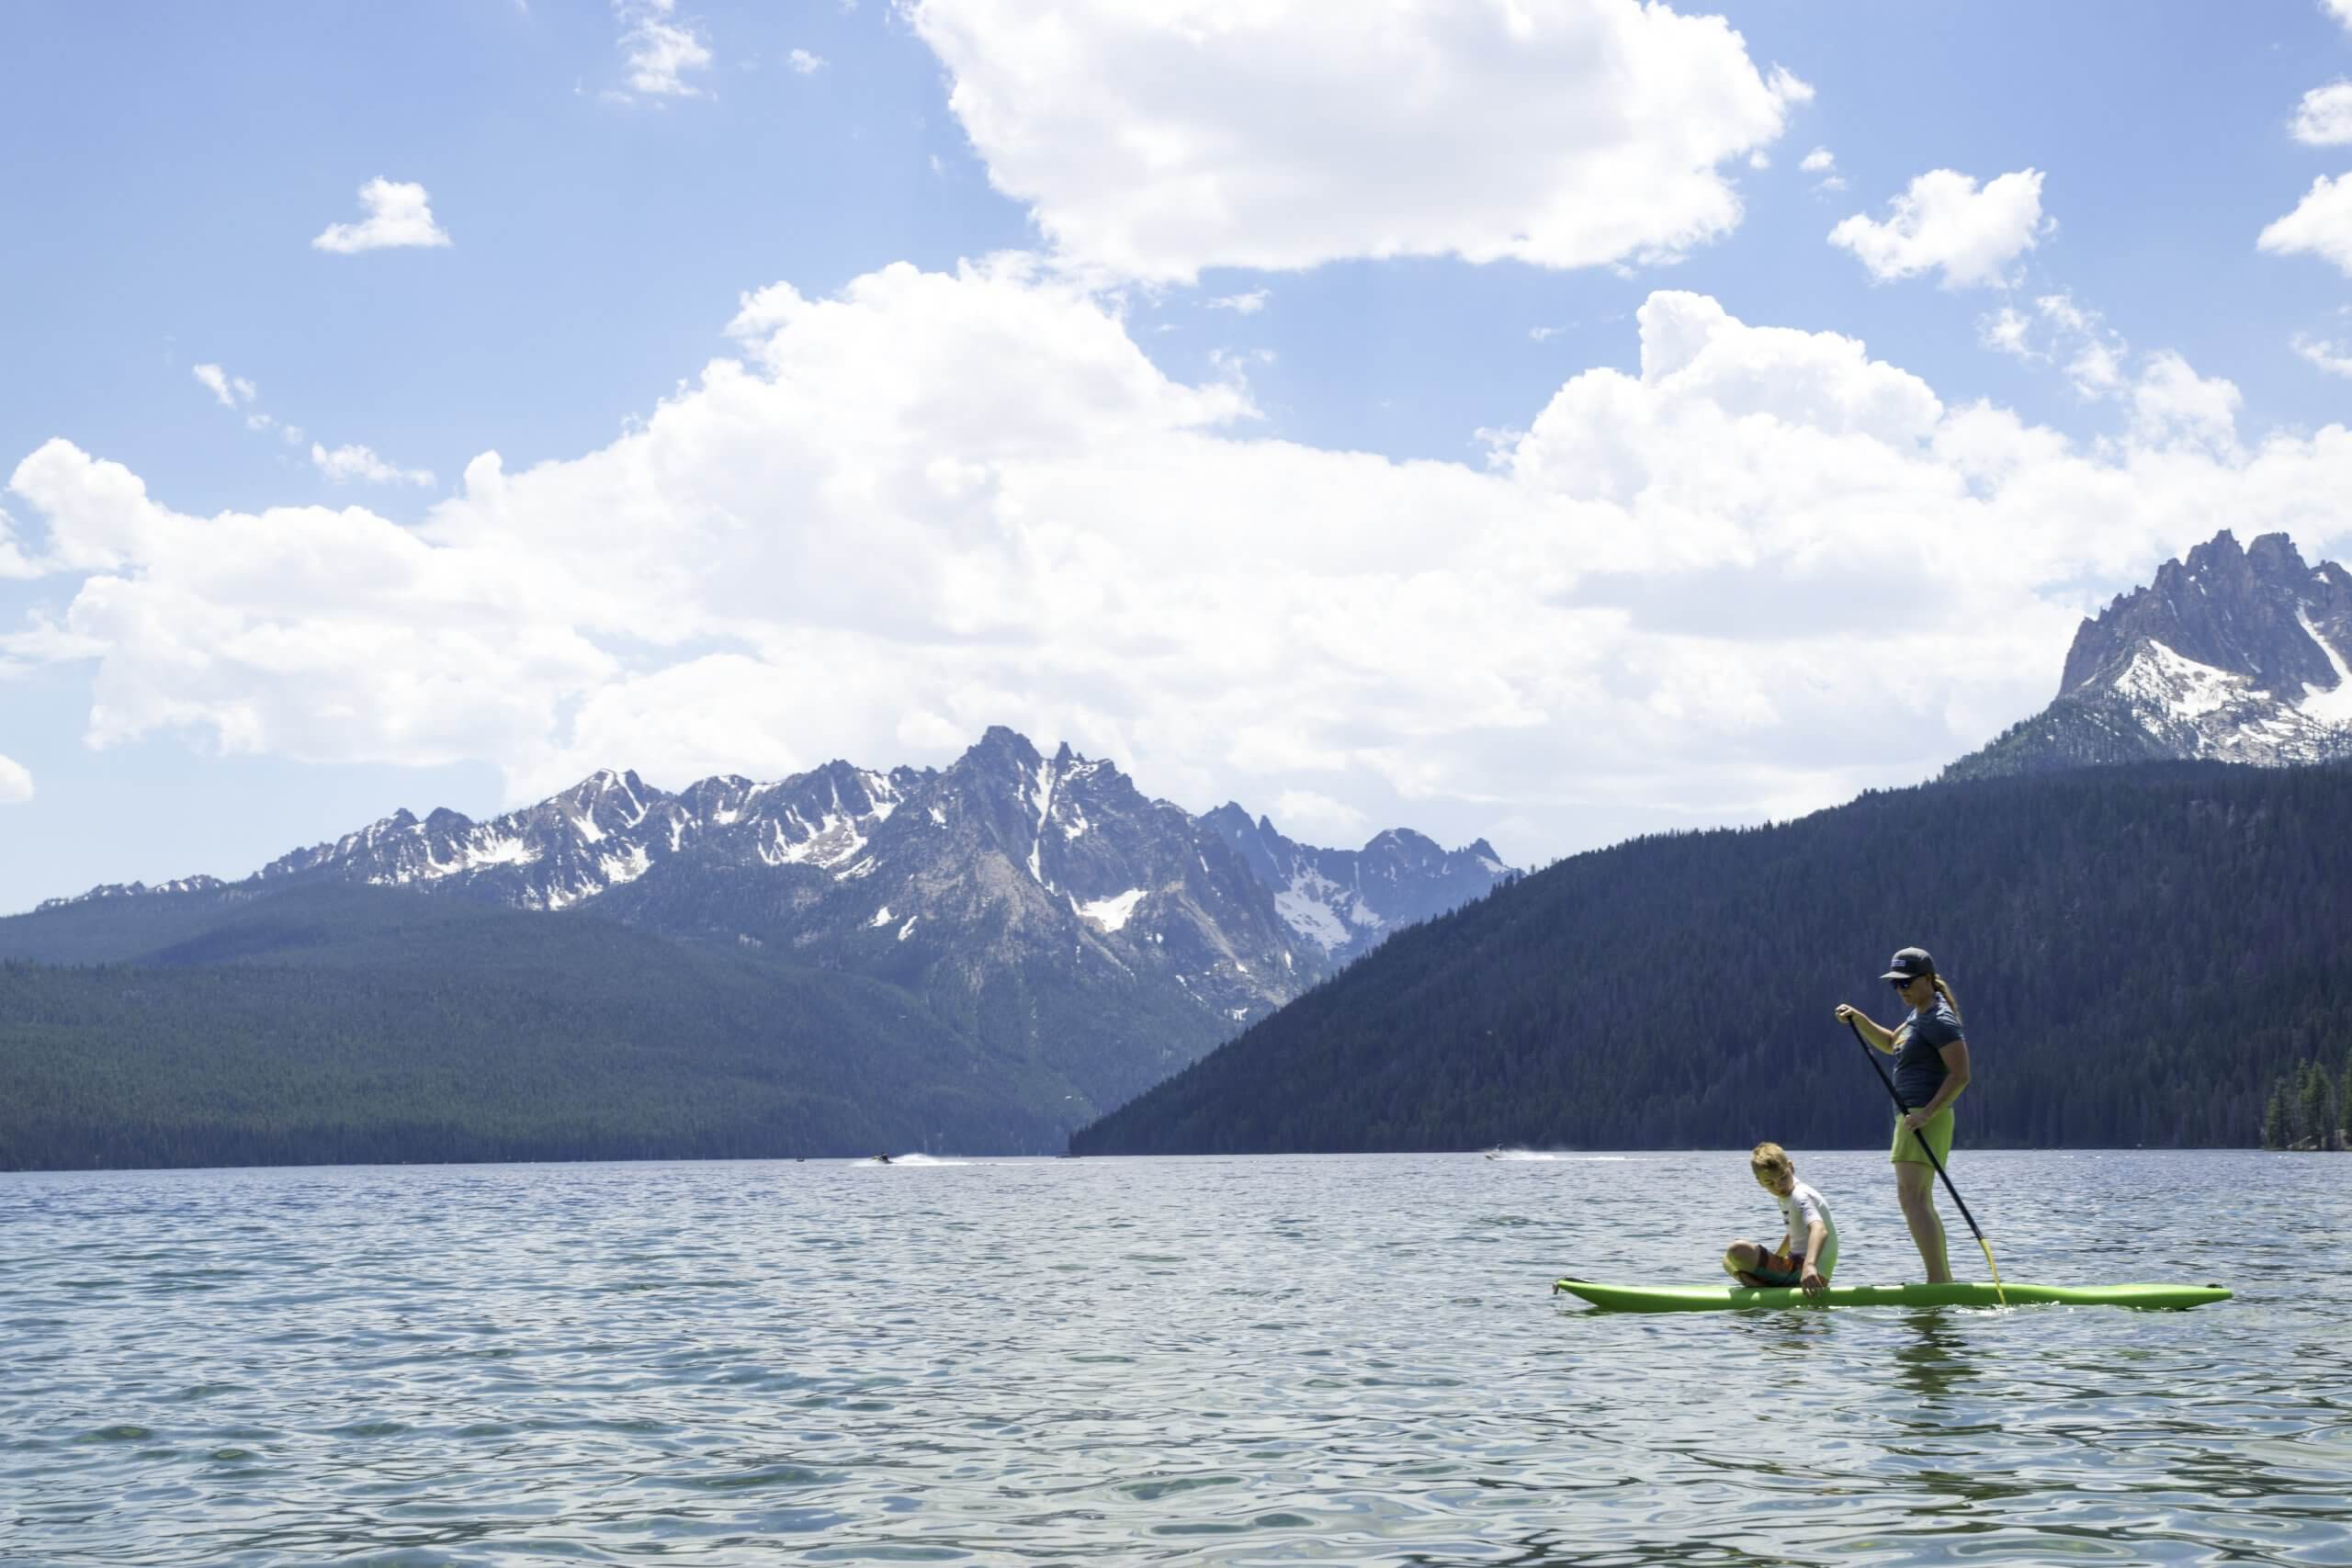 You can see why the Sawtooth mountains make Redfish Lake the ideal place to paddle board.